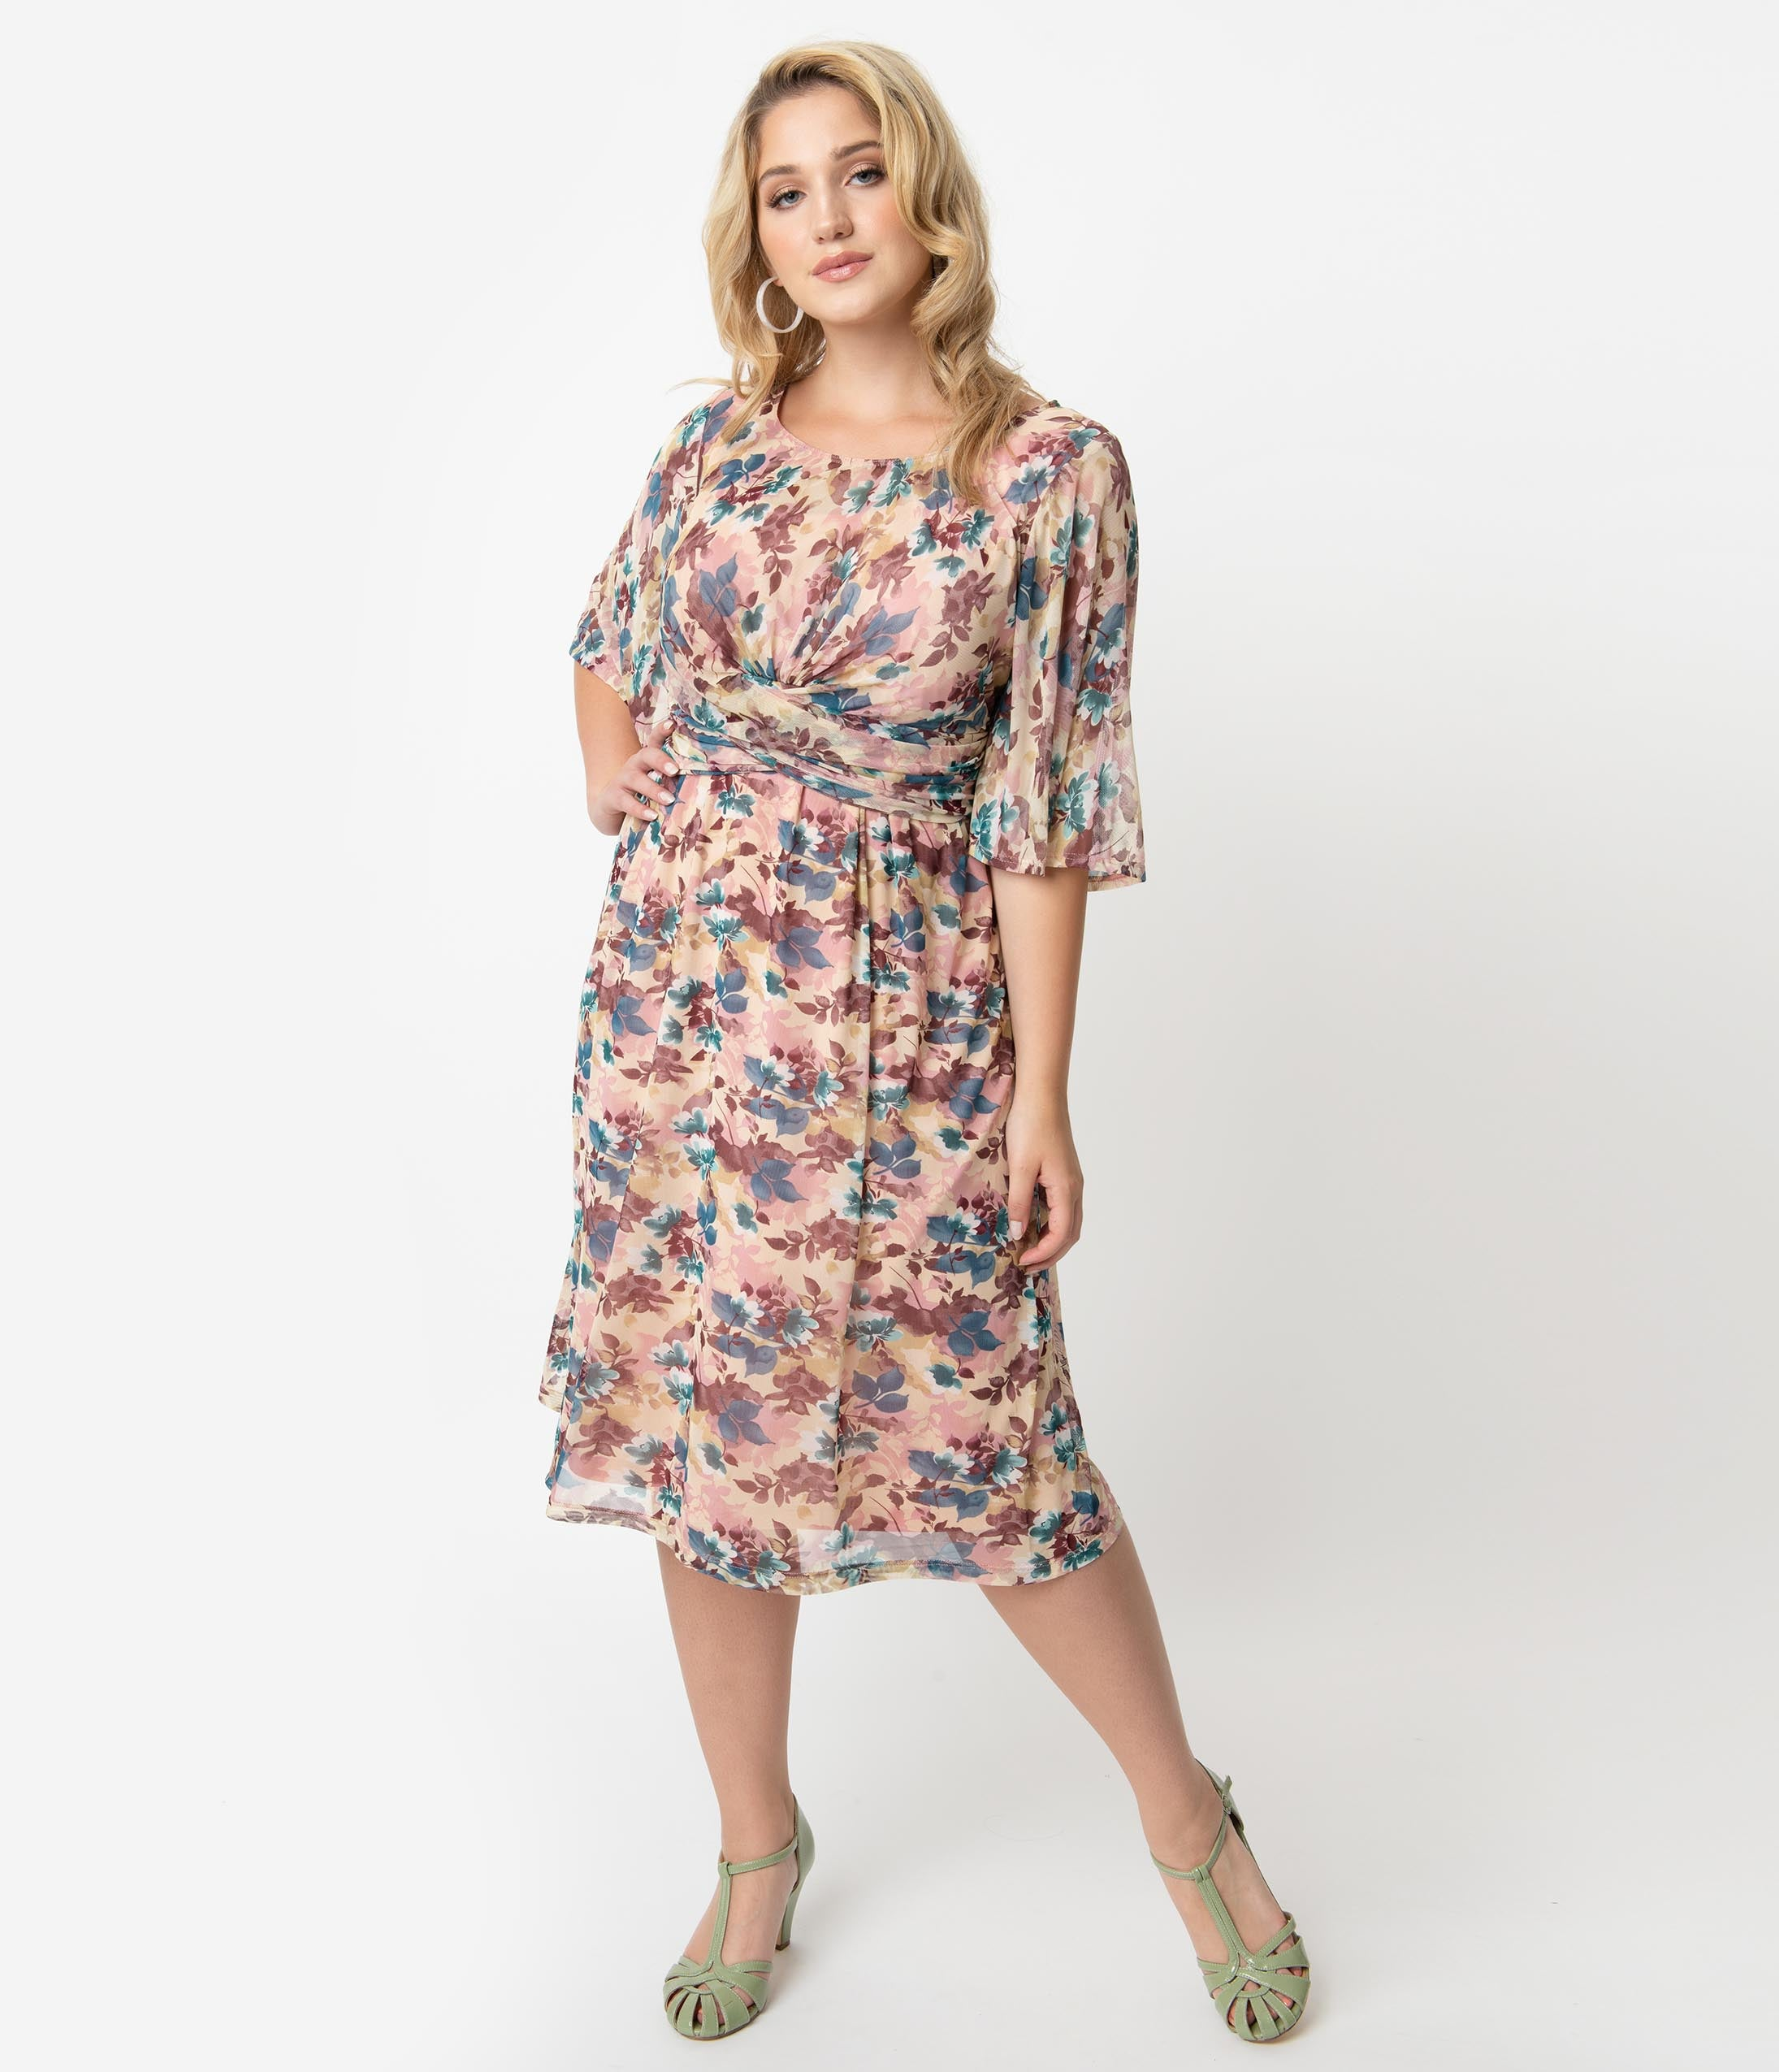 Plus Size Sophisticated A-line Scoop Neck Gathered Mesh Knit Floral Print Sheer Flutter Elbow Length Sleeves Tank Dress With a Bow(s)